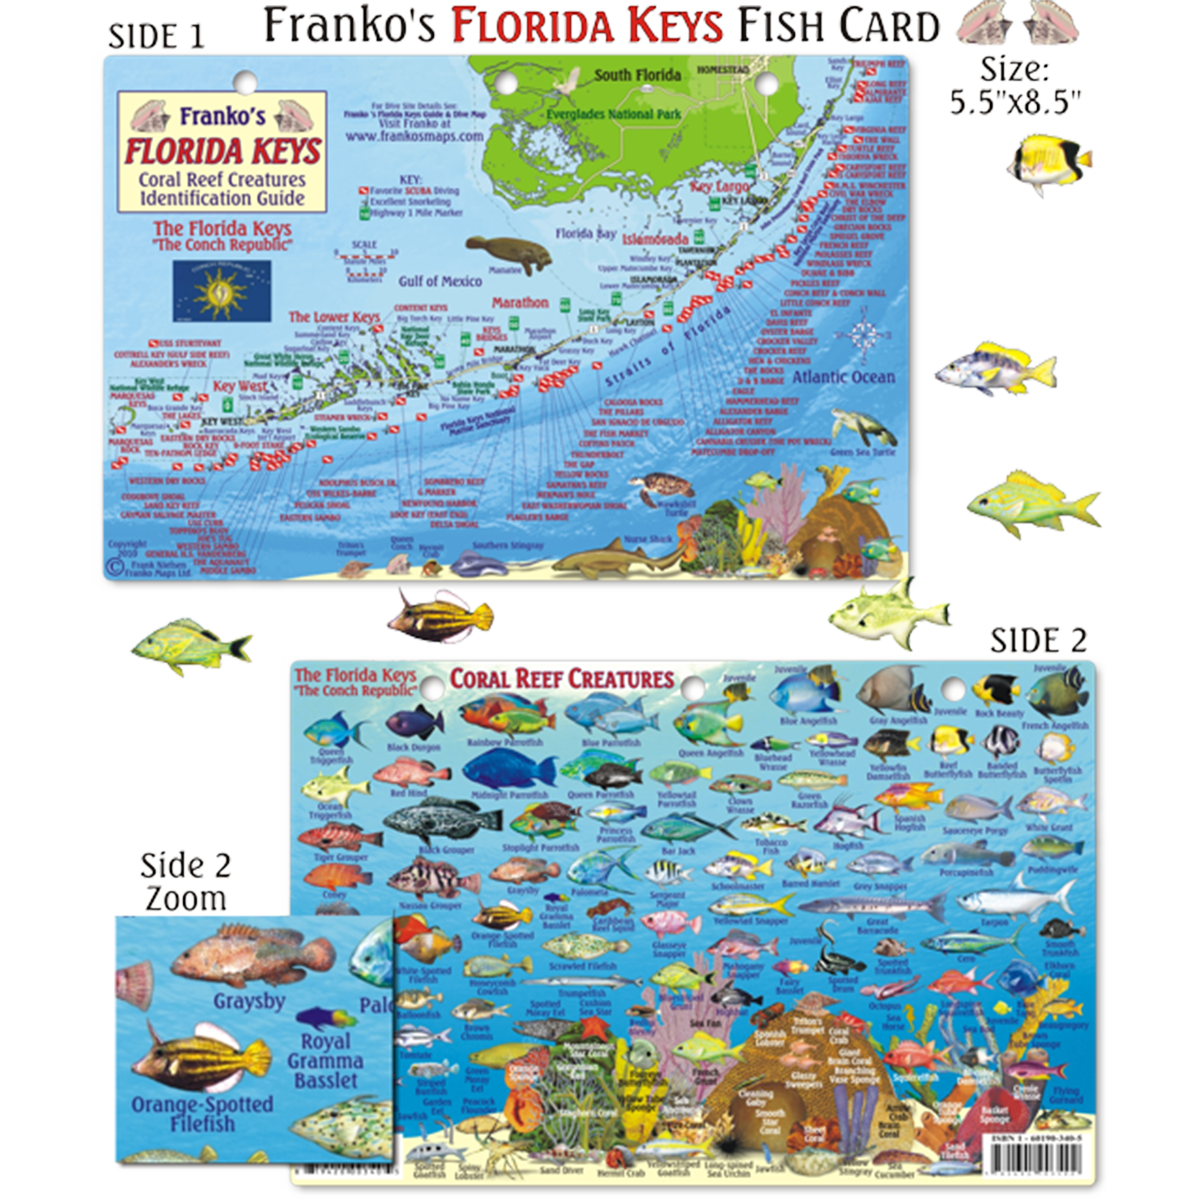 Map Of Florida And Florida Keys.Franko Maps Florida Keys Dive Creature Guide 5 5 X 8 5 Inch